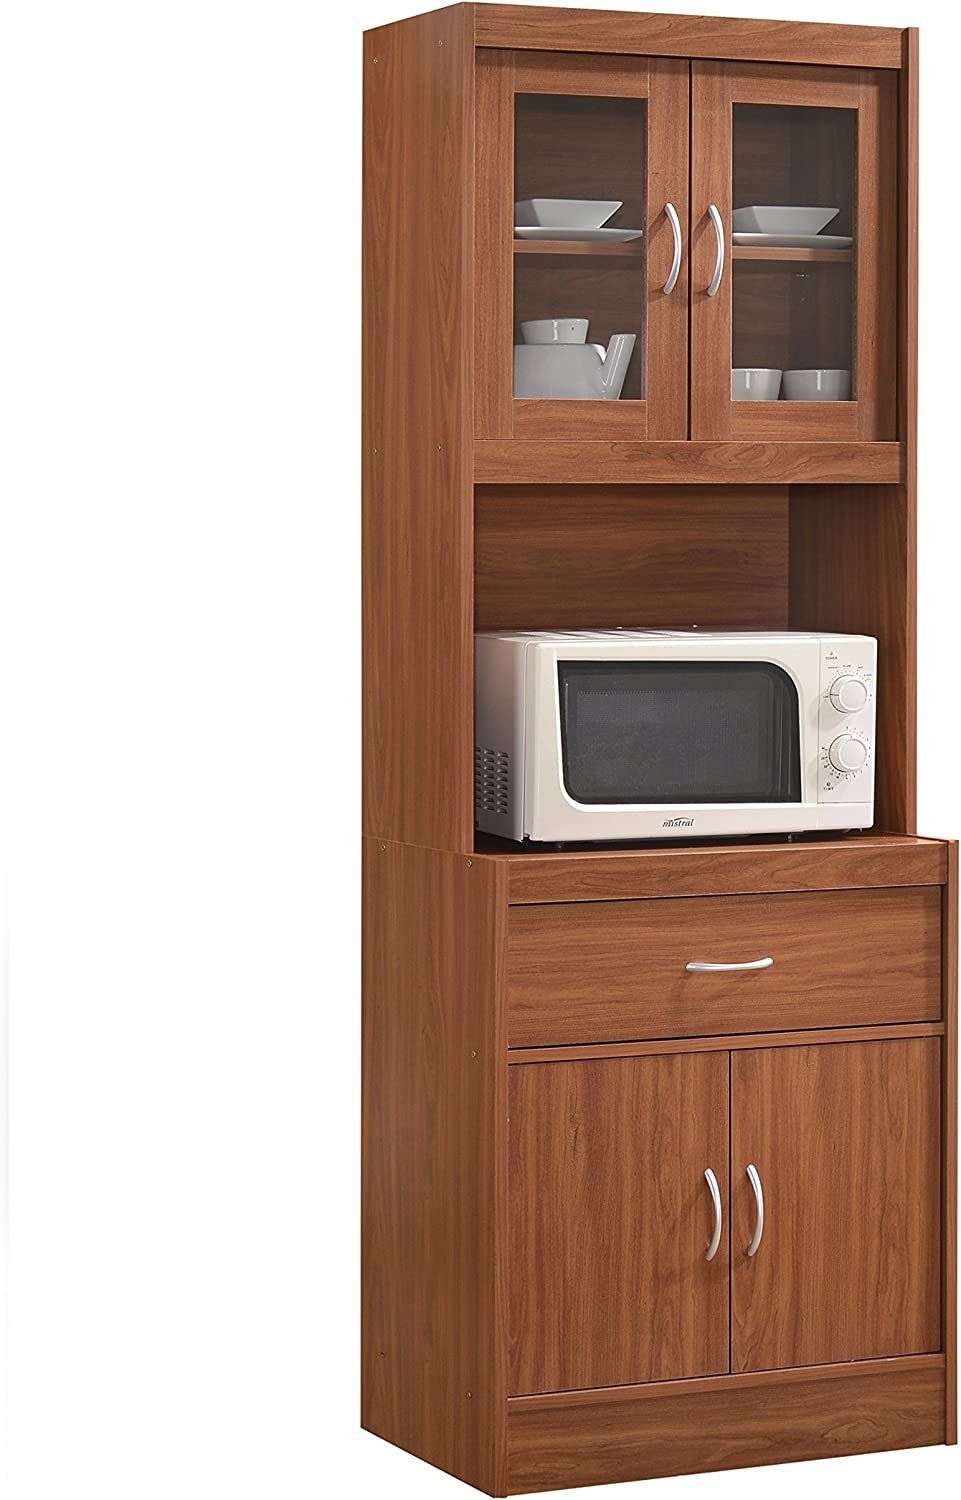 Hodedah Long Standing Kitchen Cabinet with Top & Bottom Enclosed Cabinet  Space, One Drawer, Large Open Space for Microwave, Cherry